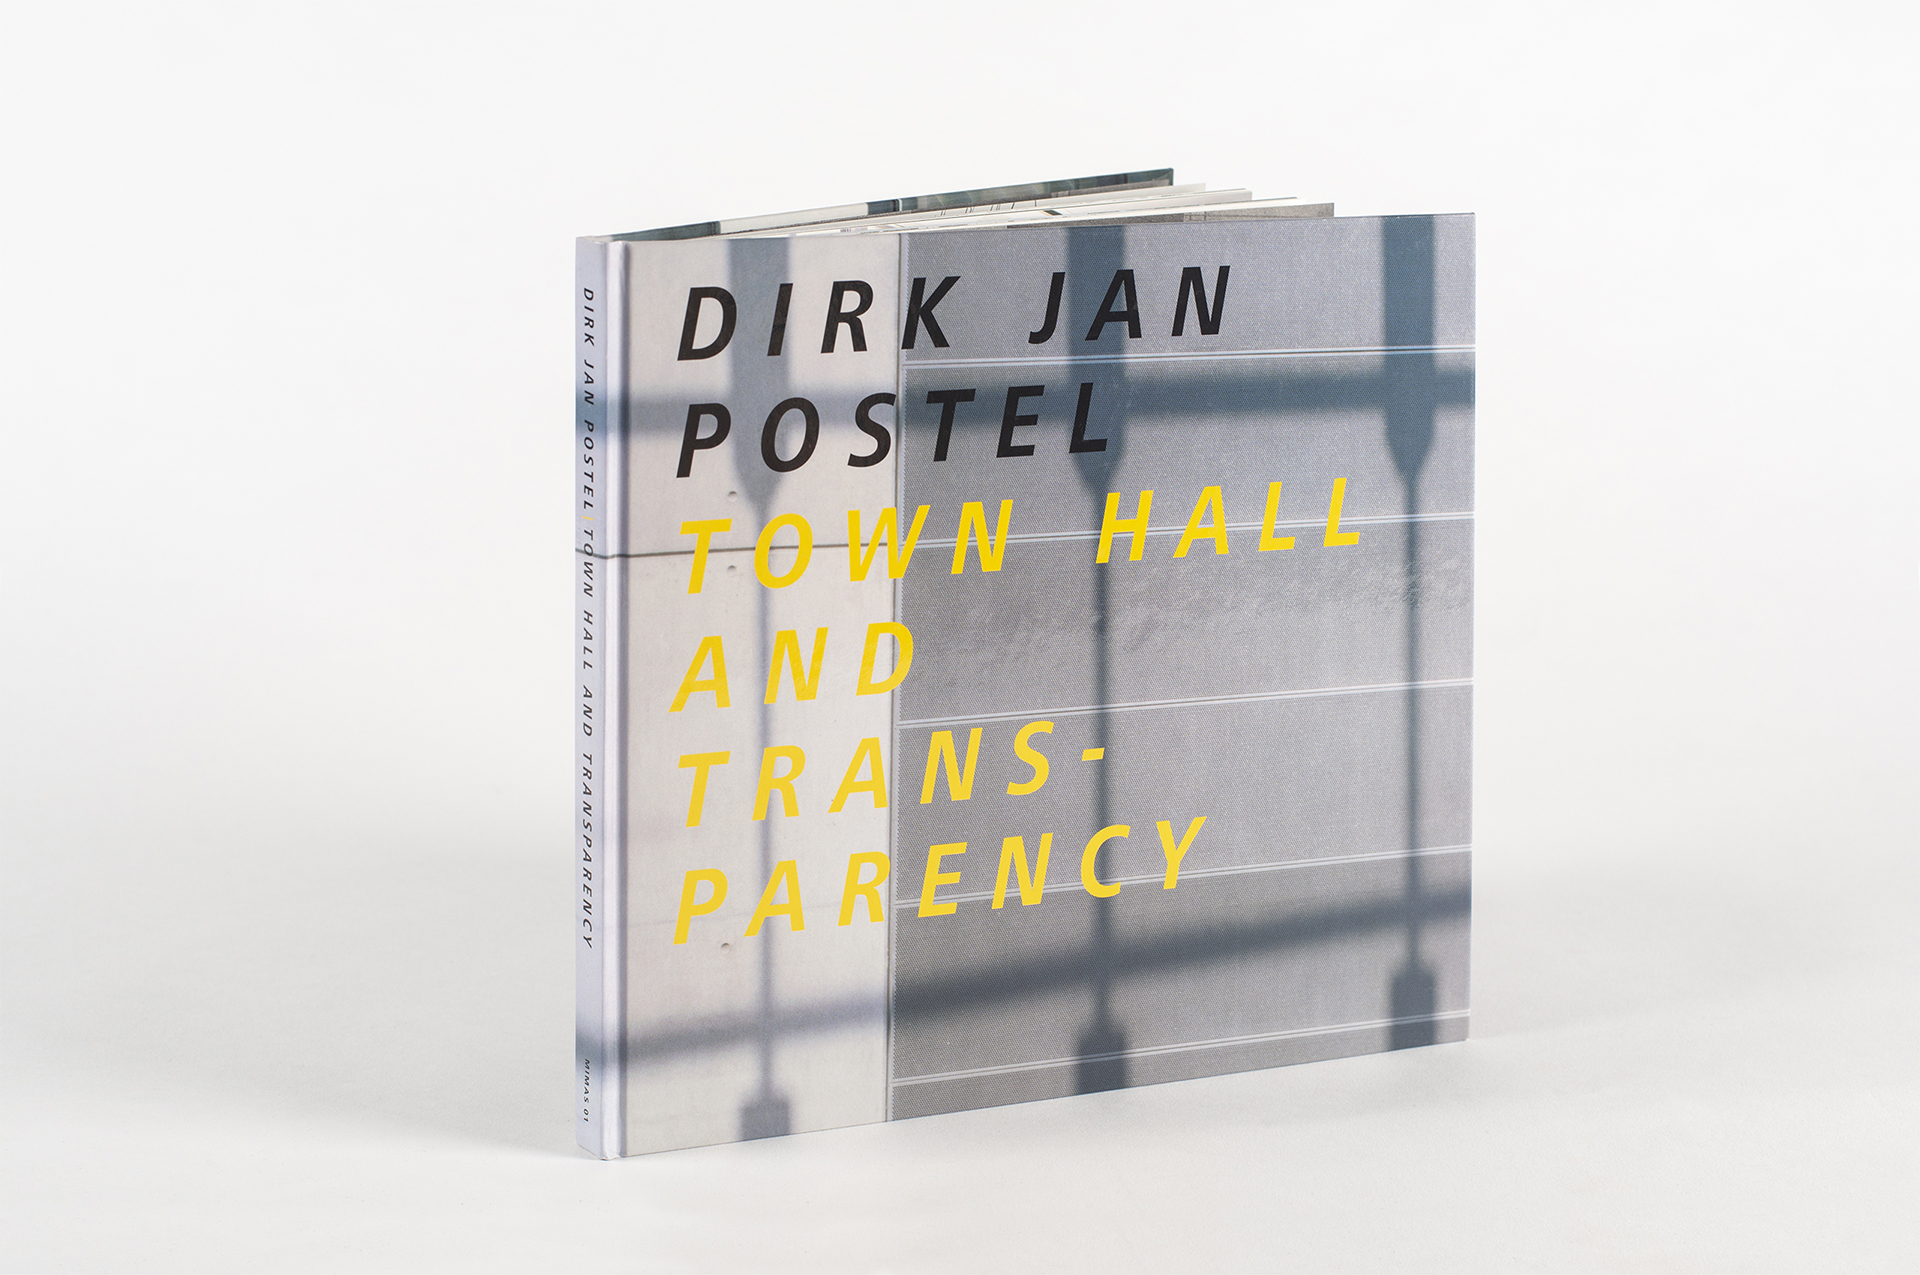 Dirk_Jan_Postel_-_Town_hall_and_transparency.jpg